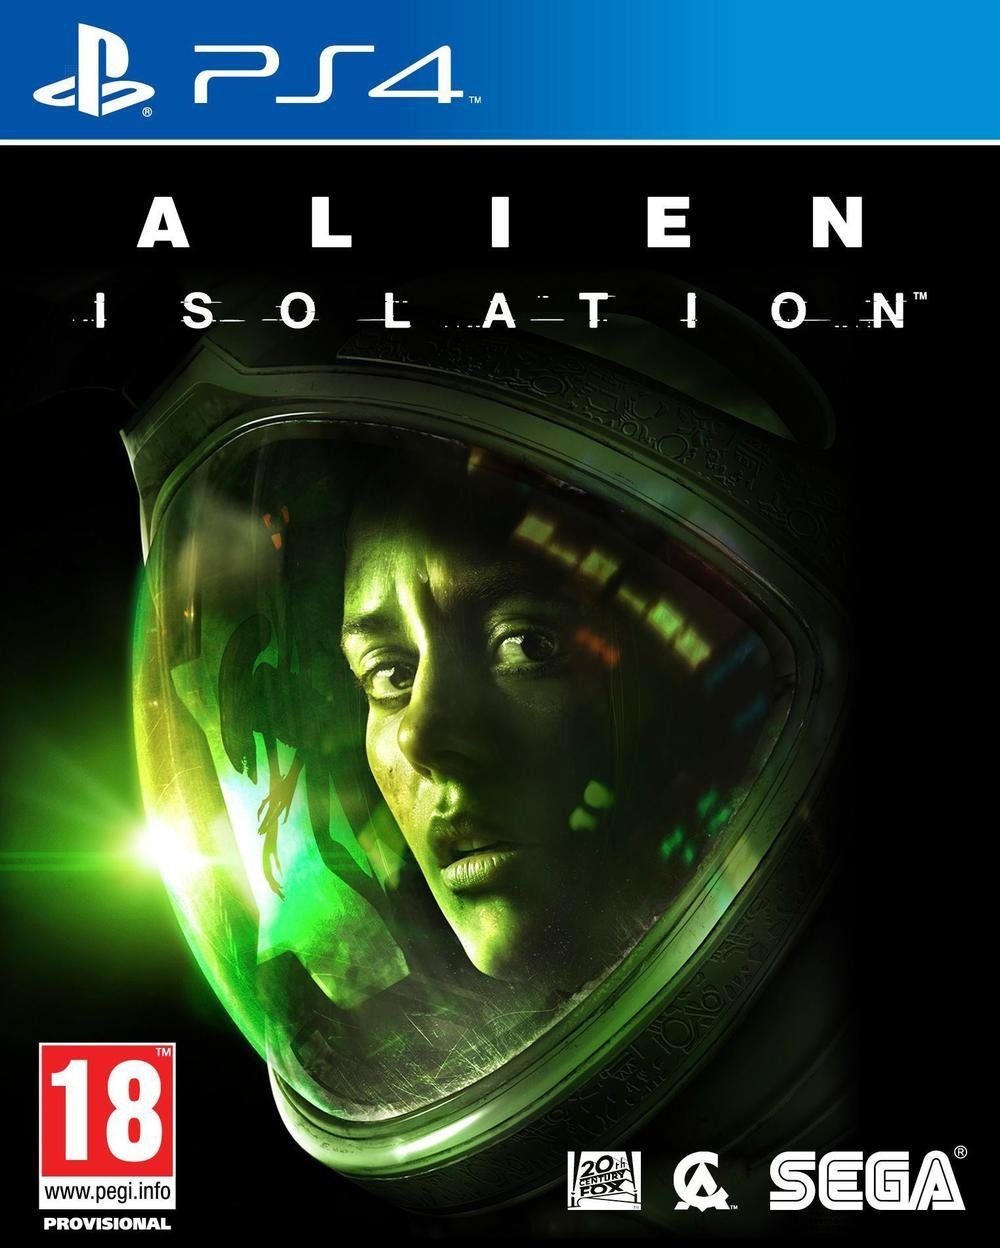 Alien Isolation - PS4  : Edition Nostromo  | Creative Assembly. Programmeur